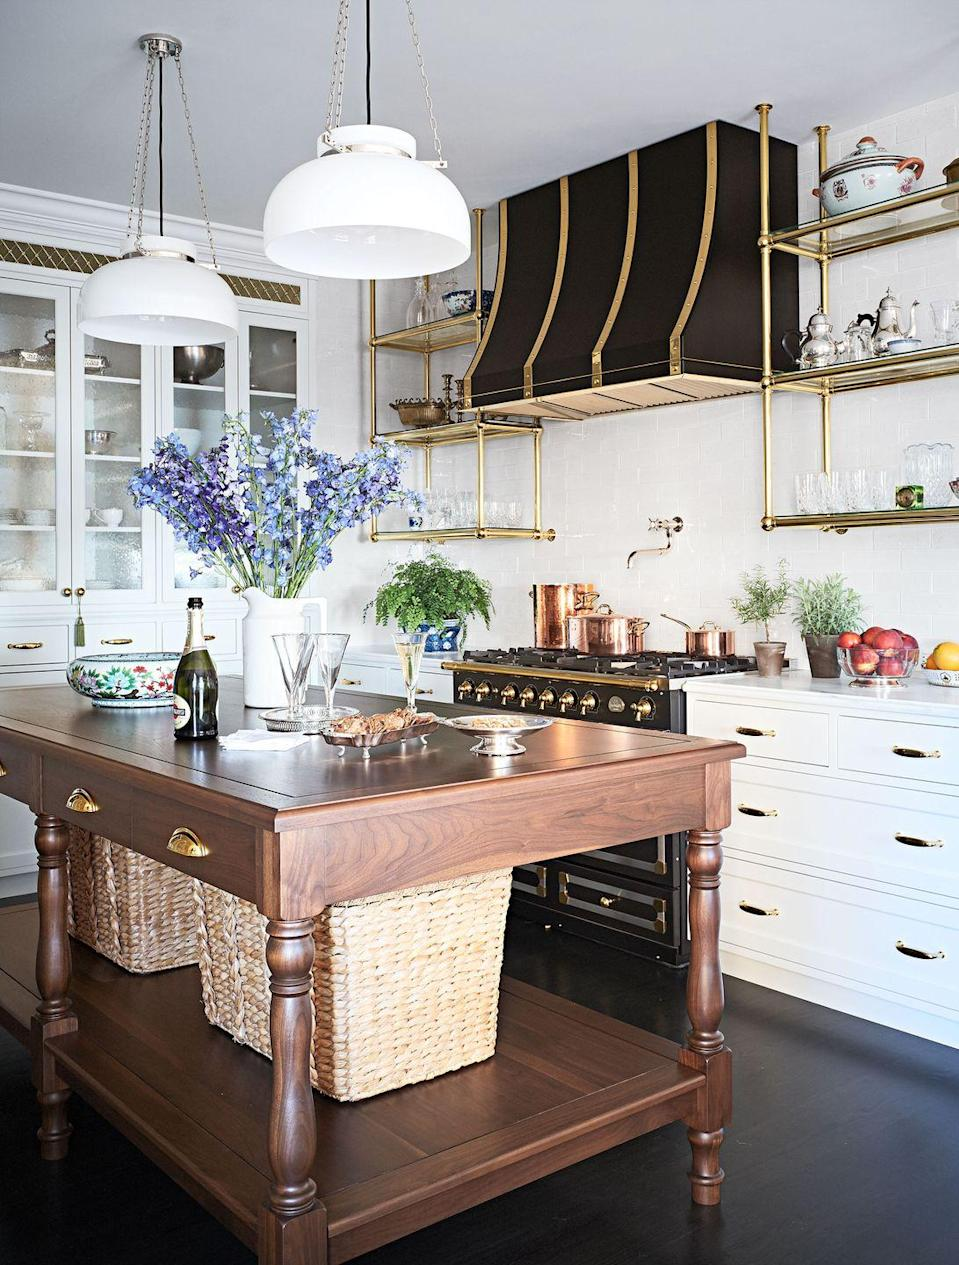 "<p>The decorative brass grilles and accents around the stovetop, plus the white pendant lights give this renovated kitchen by Summer Thornton a <a href=""https://www.housebeautiful.com/design-inspiration/house-tours/a25647684/summer-thornton-chicago-apartment-tour-transformation/"" rel=""nofollow noopener"" target=""_blank"" data-ylk=""slk:French brasserie"" class=""link rapid-noclick-resp"">French brasserie</a> feel. Storage baskets under the kitchen island table dress things down just a touch. </p>"